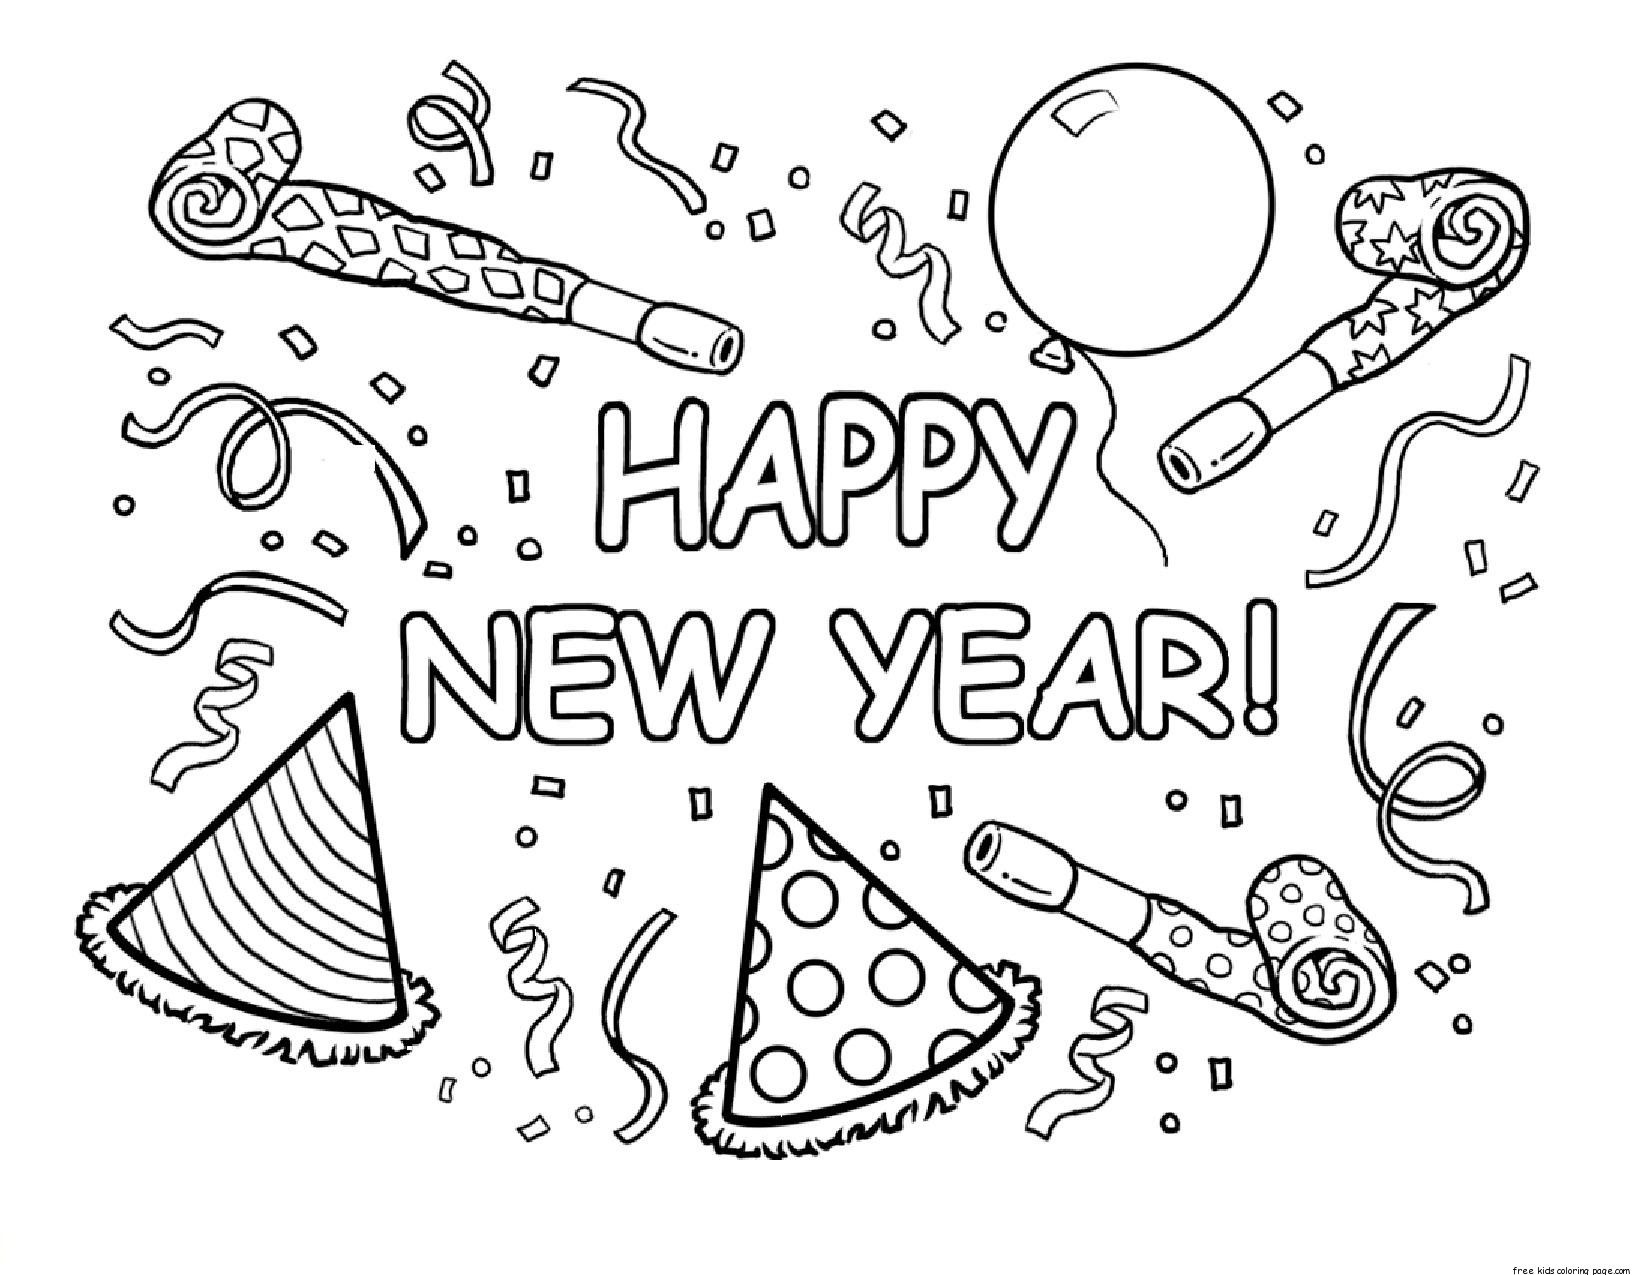 coloring holidays ideas new year for kids happy birthday theme remove sharpie from skin coloring pages Happy New Year 2019 Coloring Page